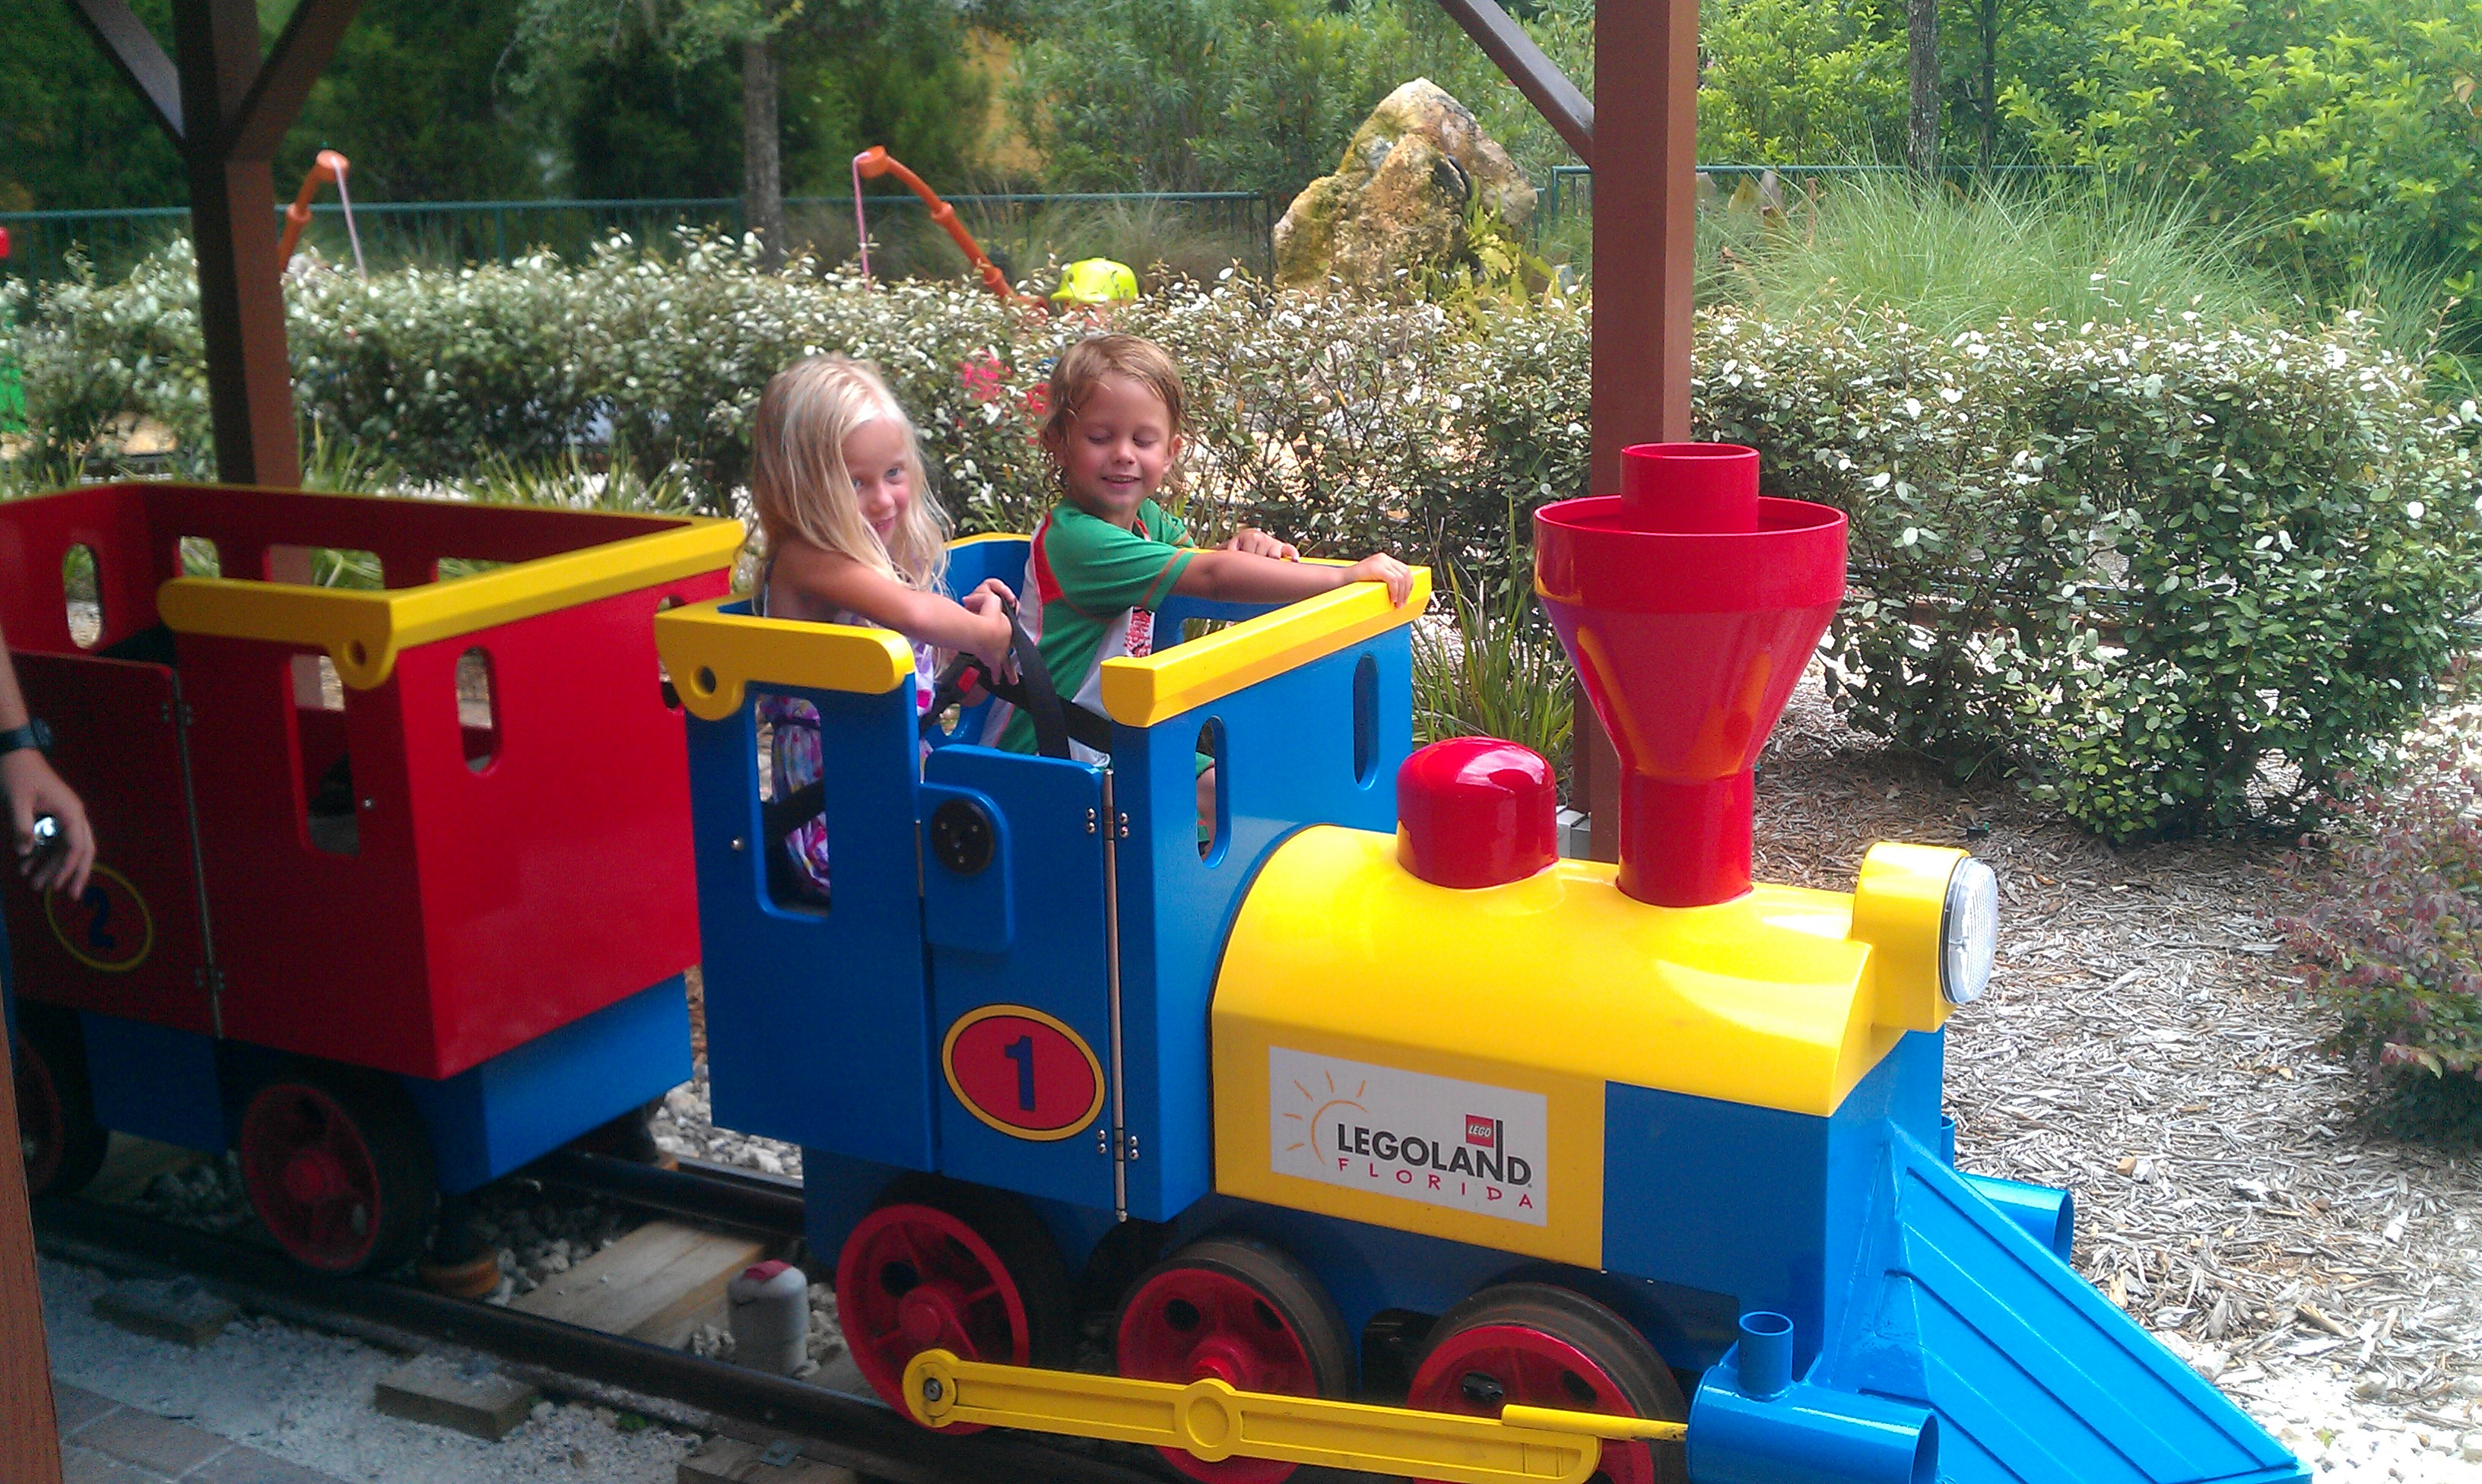 Kids having fun at Legoland Florida